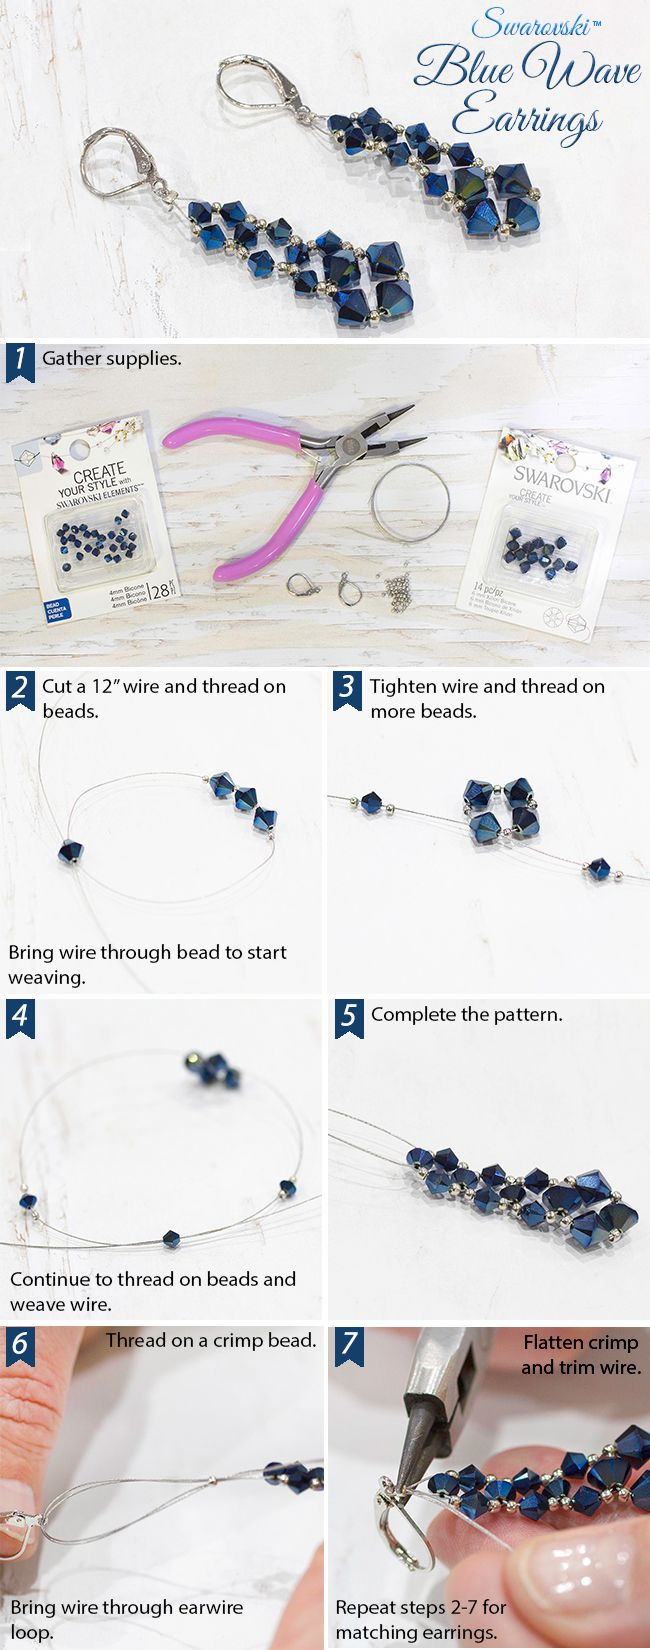 DIY Swarovski Blue Wave Earrings